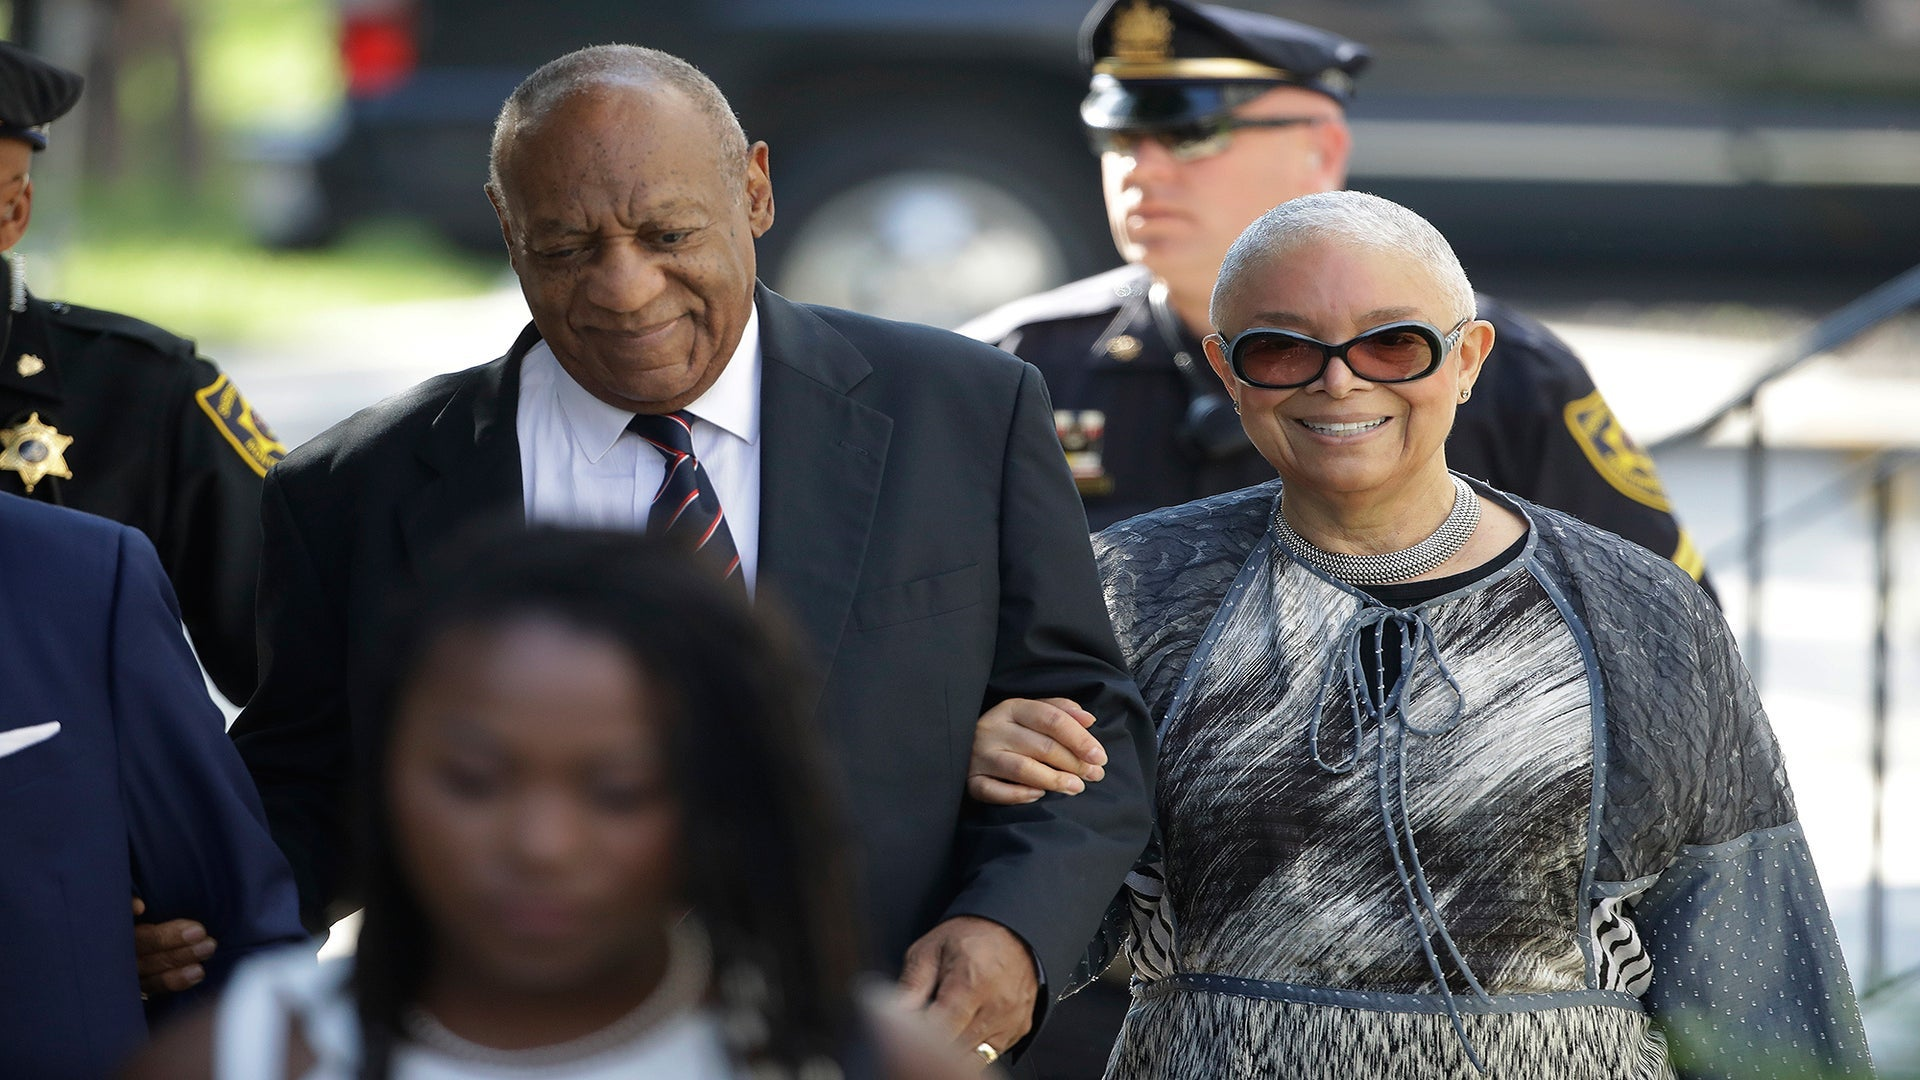 Camille Cosby Suggests Me Too Movement Is Steeped In Racism: 'They Need To Clean Up Their Acts'